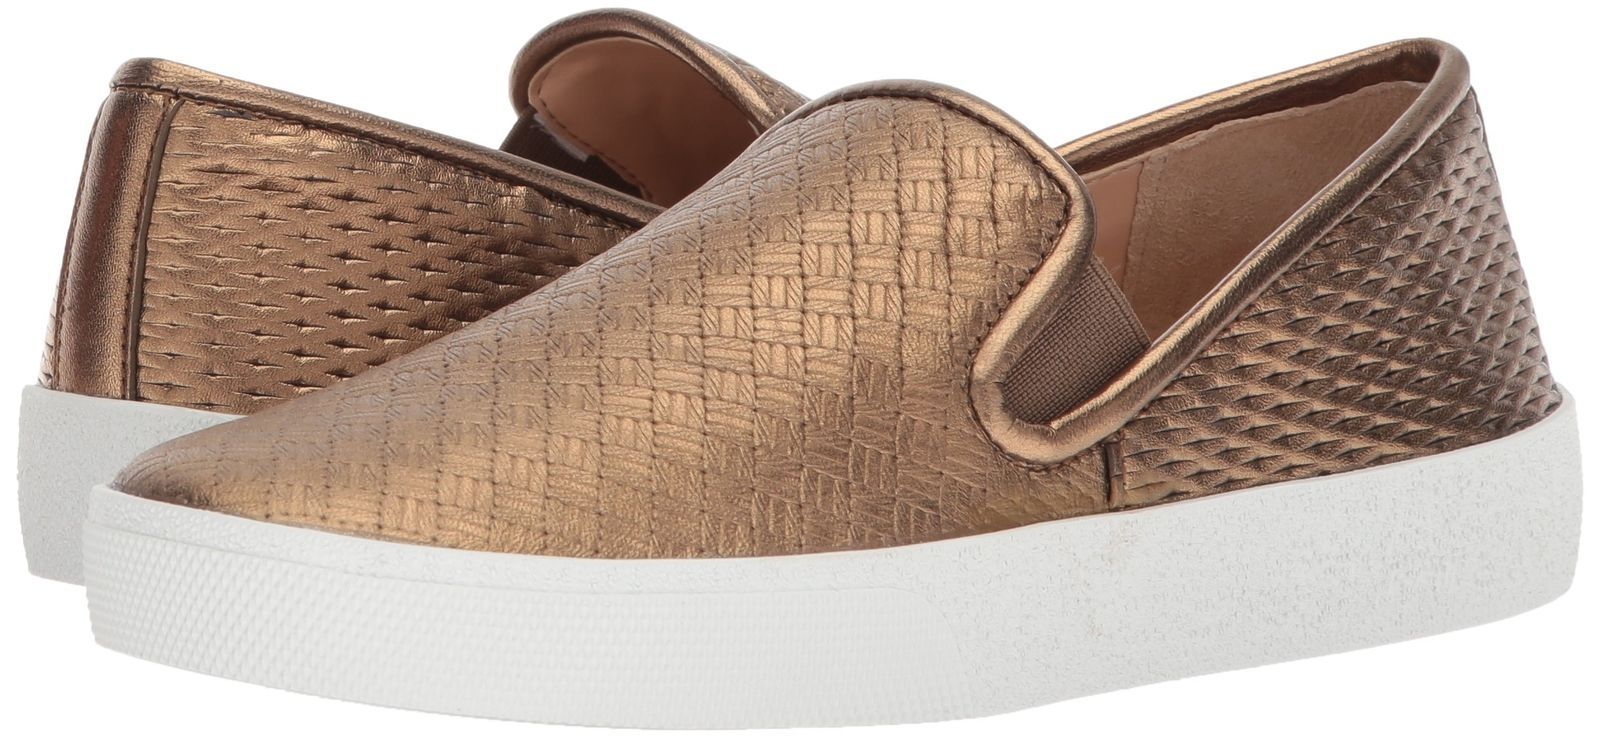 VINCE CAMUTO WOMEN'S CARIANA SNEAKER BRONZE 9 M US